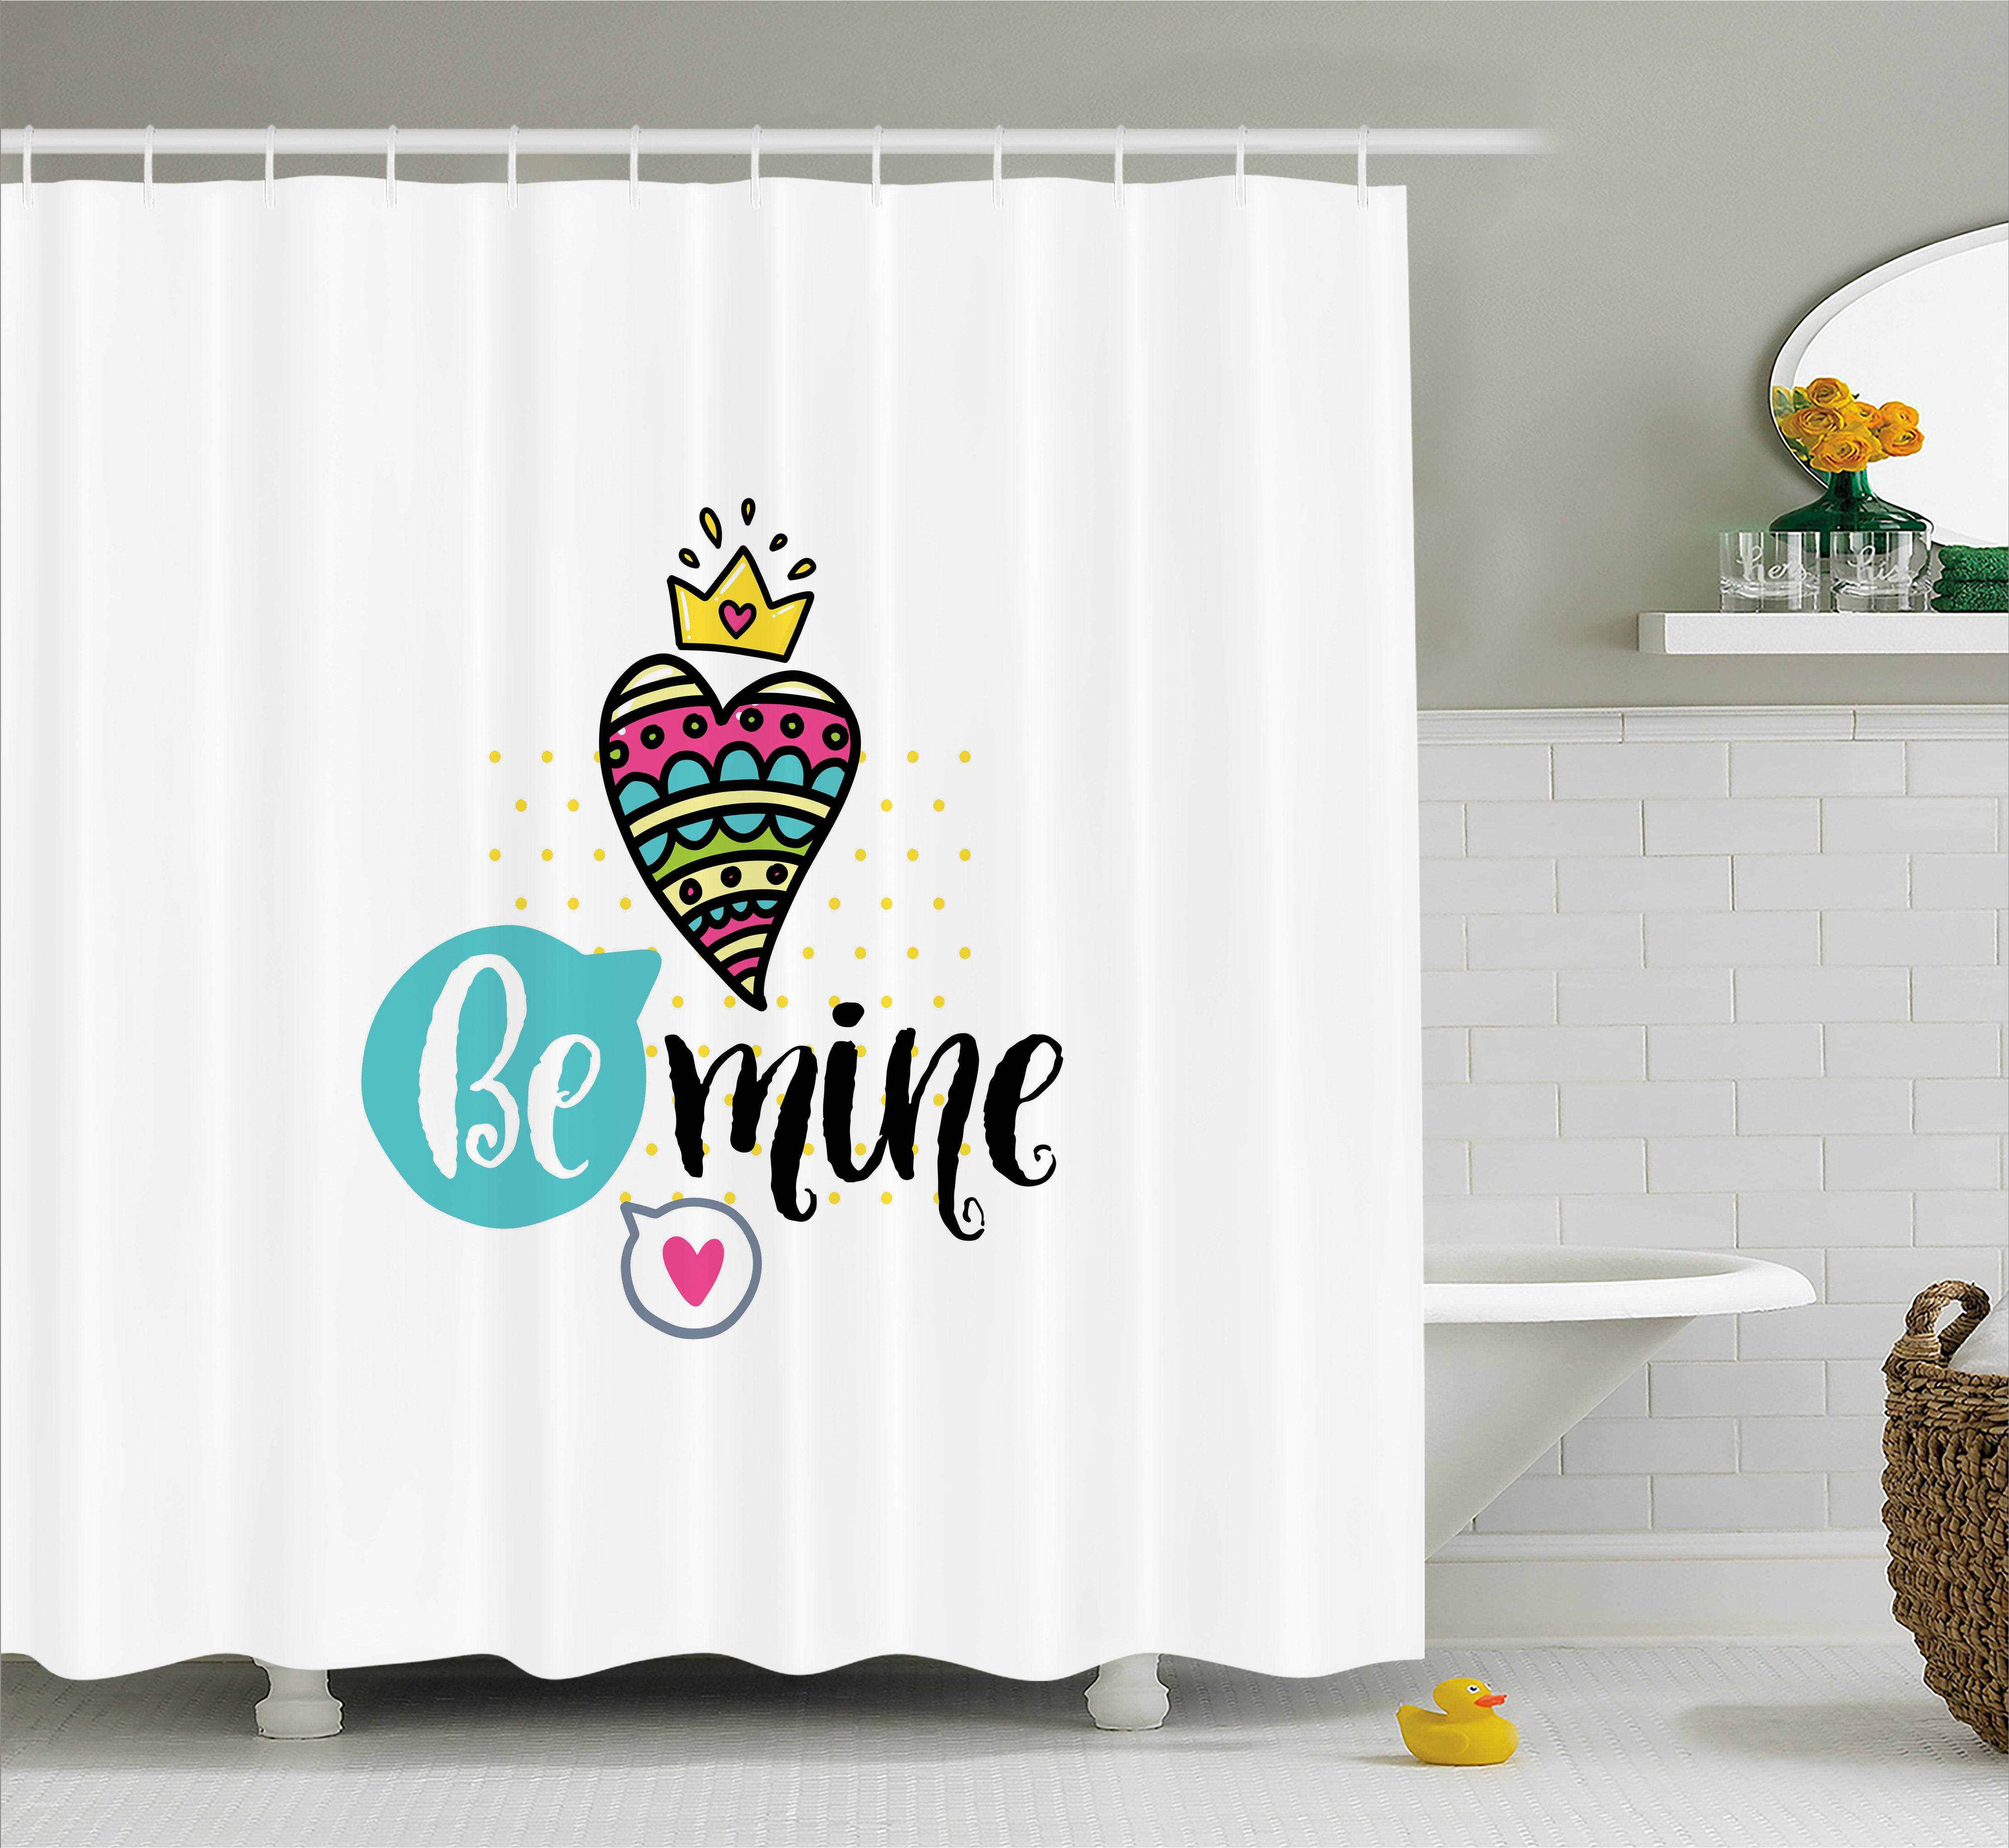 Romantic Shower Curtain Colorful Patterned Heart Shape With A Crown Creative Typography Phrase Be Mine Fabric Bathroom Set Hooks 69W X 70L Inches